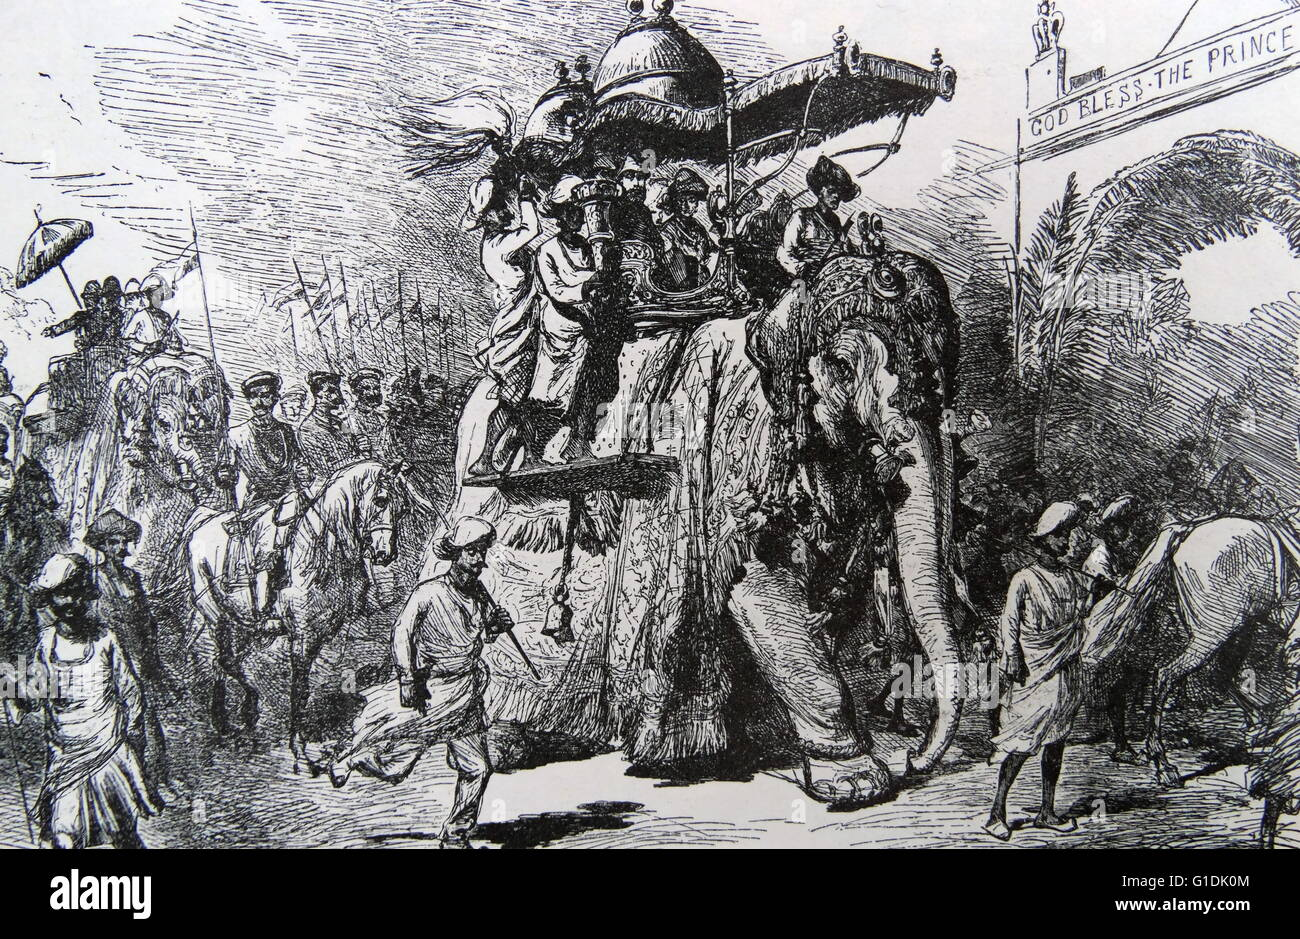 The prince of wales riding a elephant during his visit (later king Edward VII) at Baroda, November 1857. Stock Photo